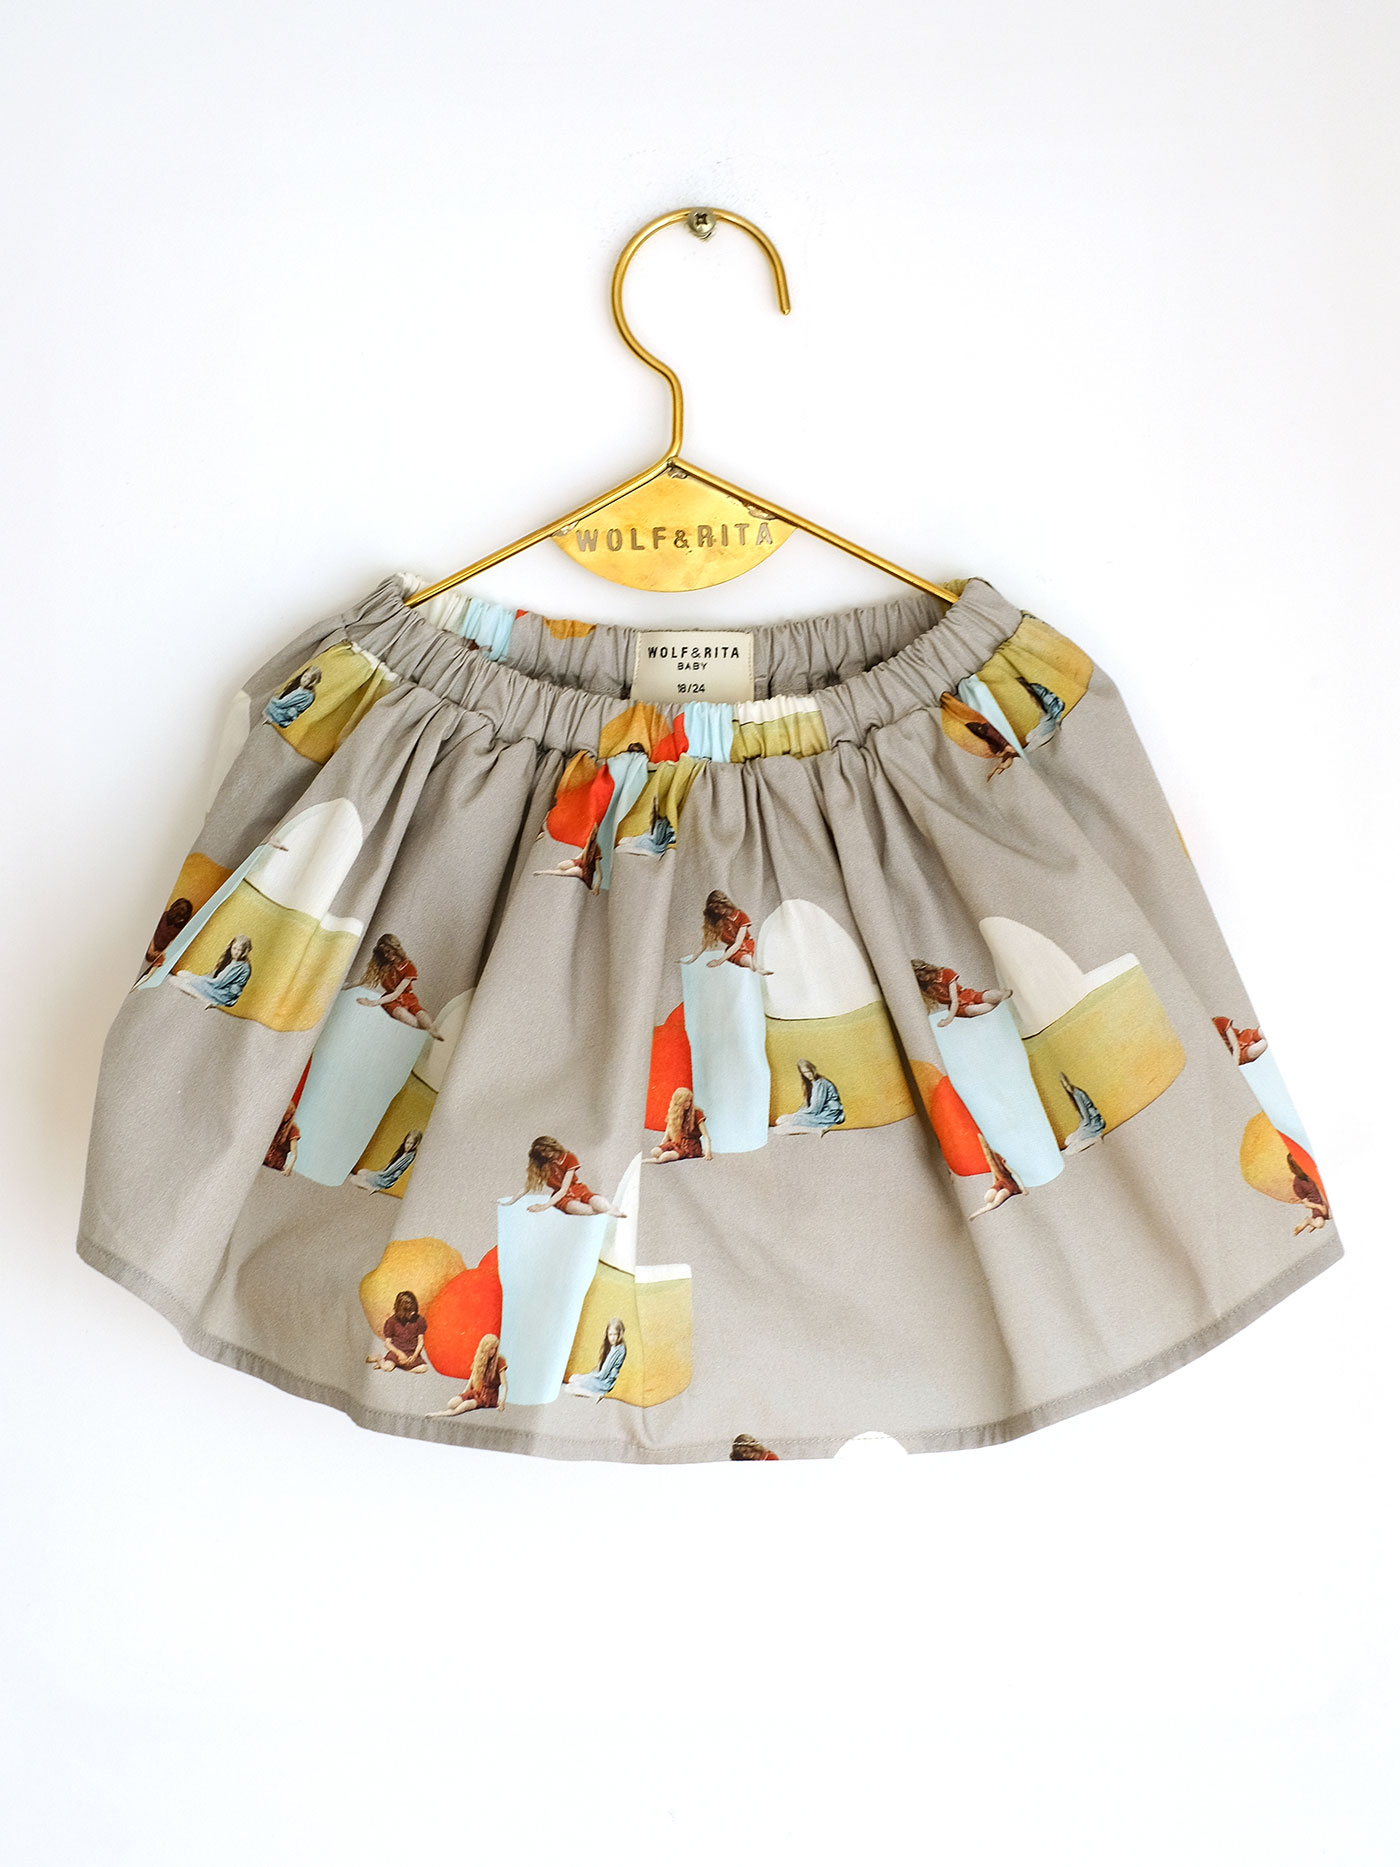 Wolf & Rita Grey - Leonor No Electricity Skirt - Clothing